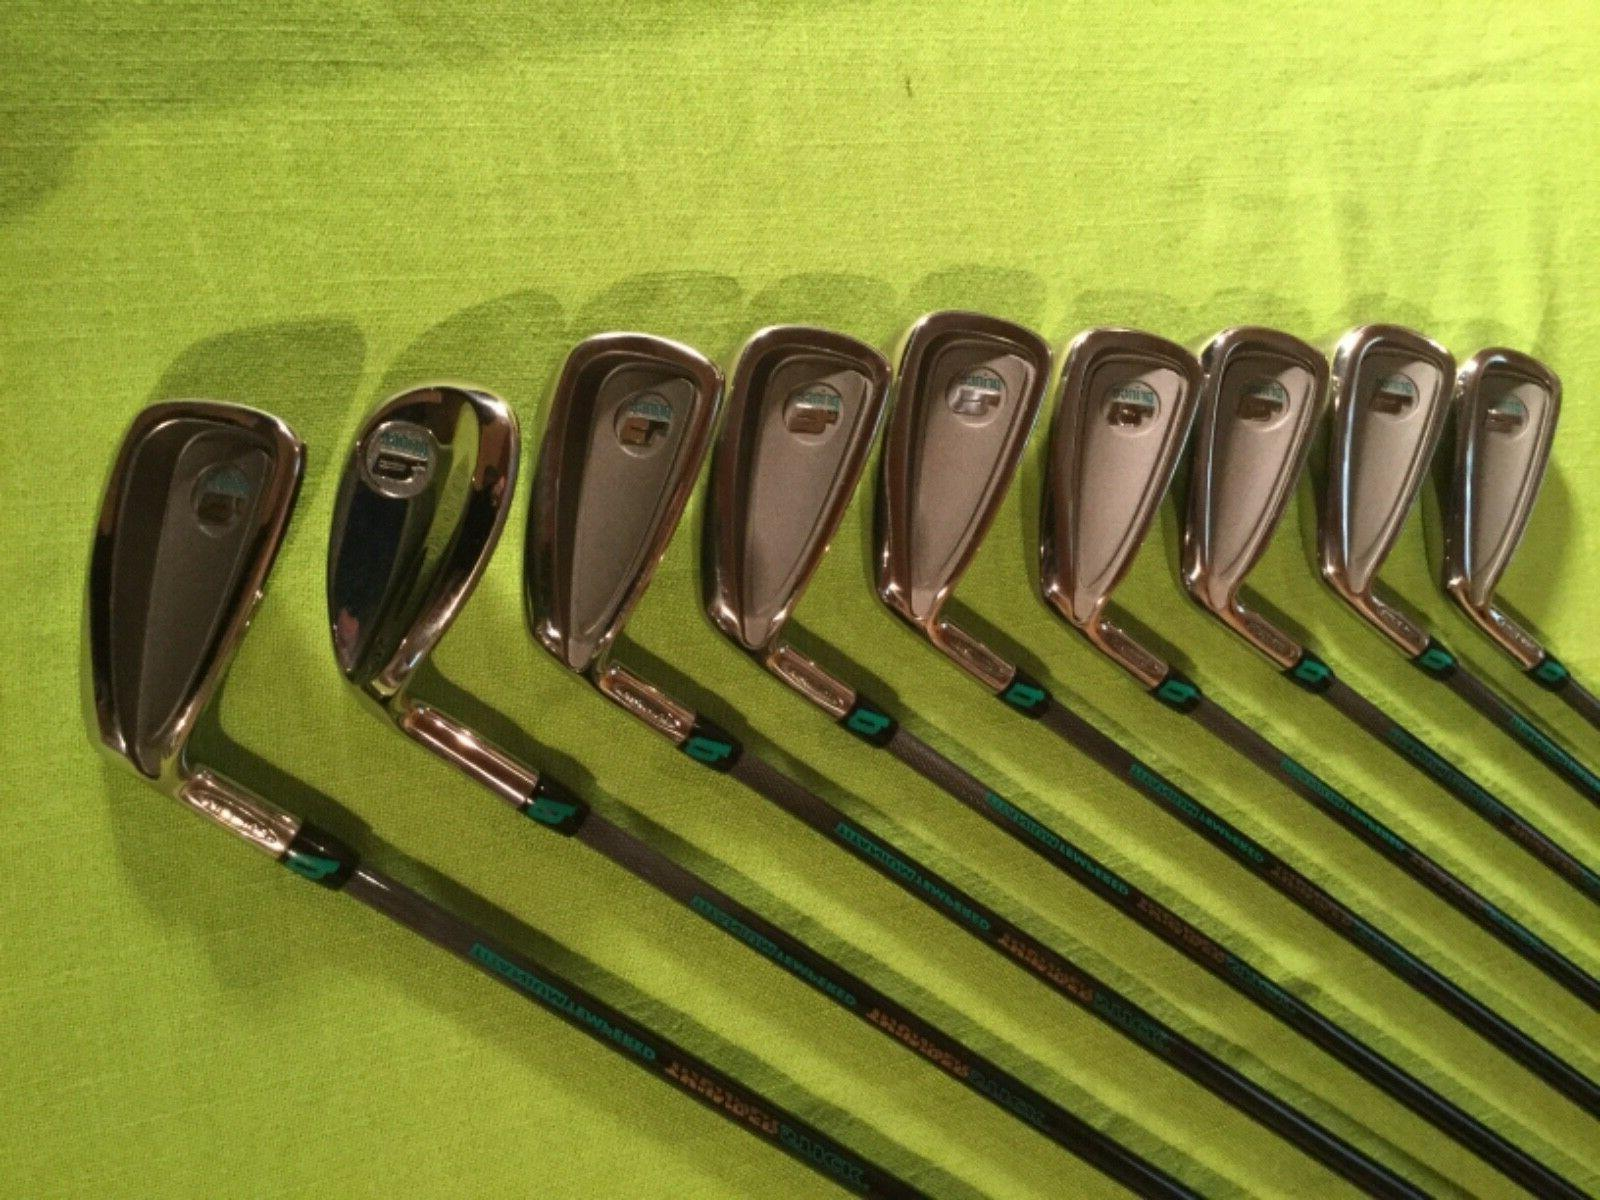 golf irons 3 9 pw and sw